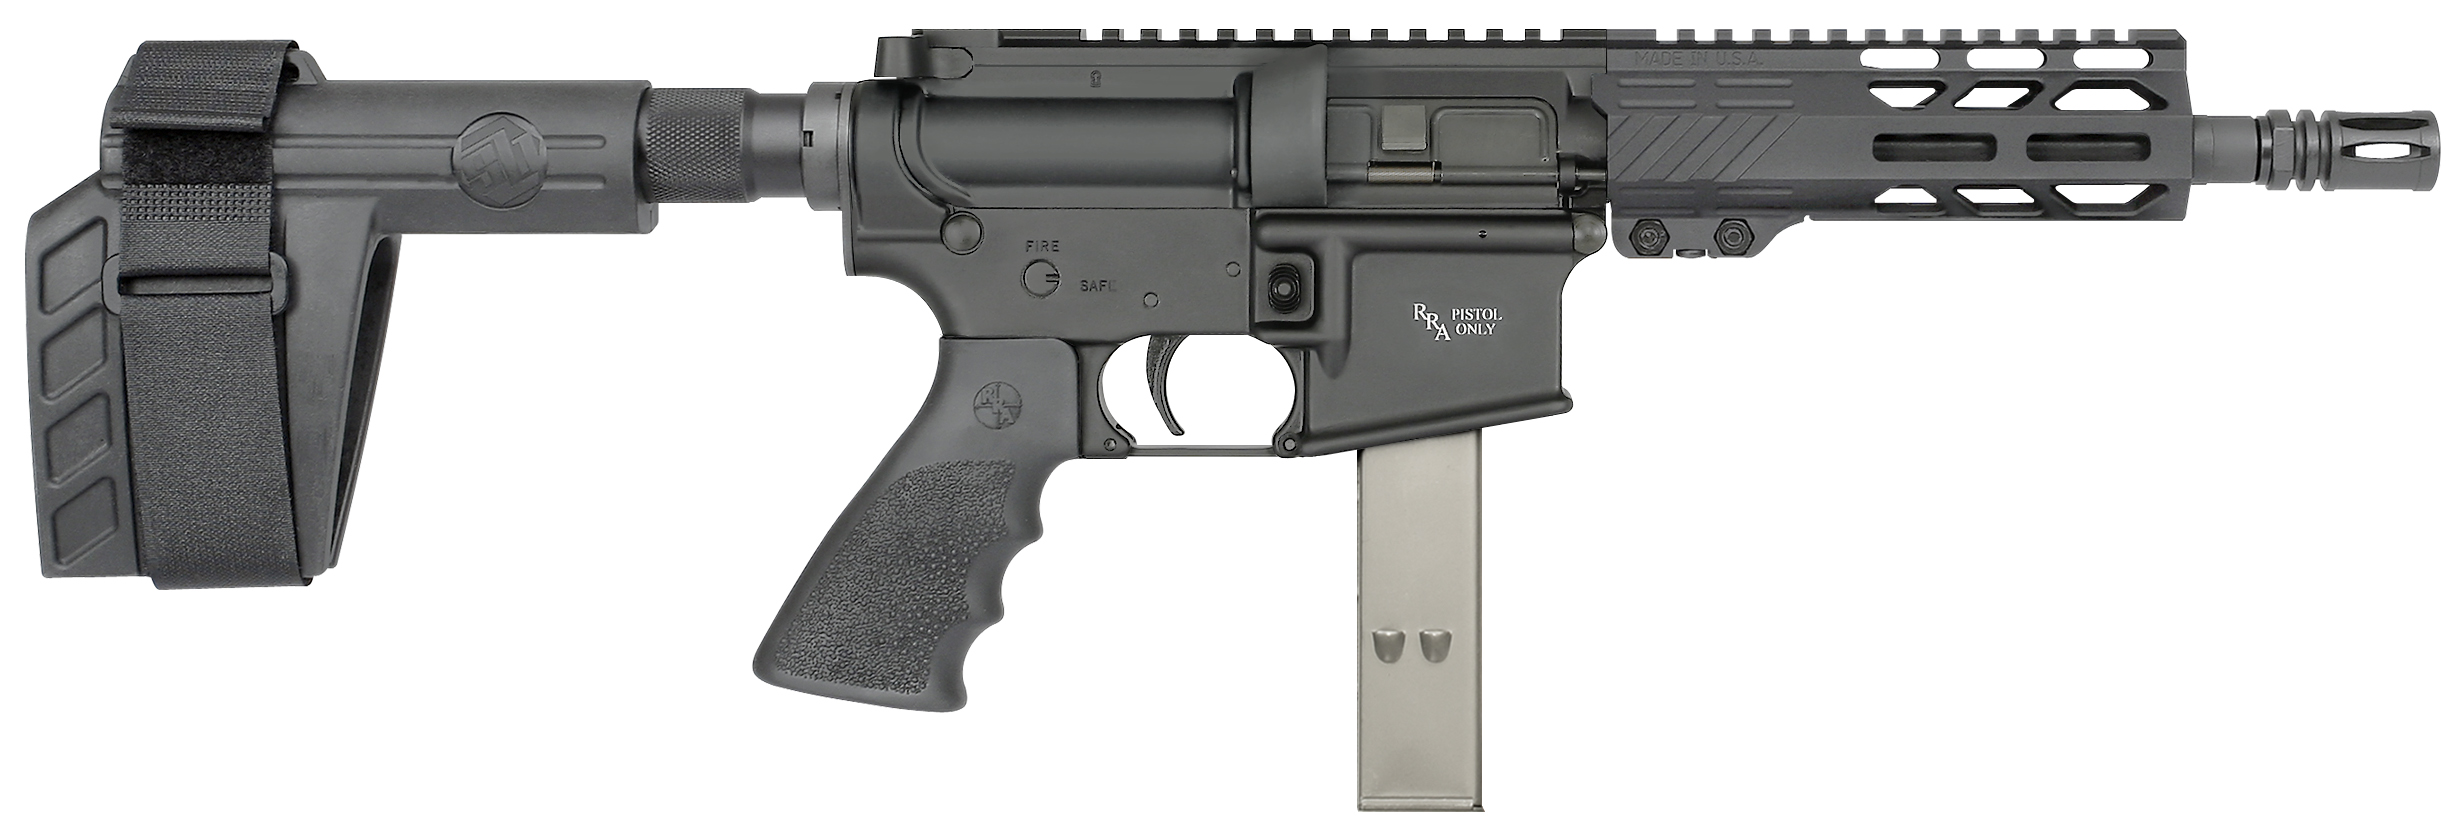 Rock River Arms Releases New LAR-9 Pistols